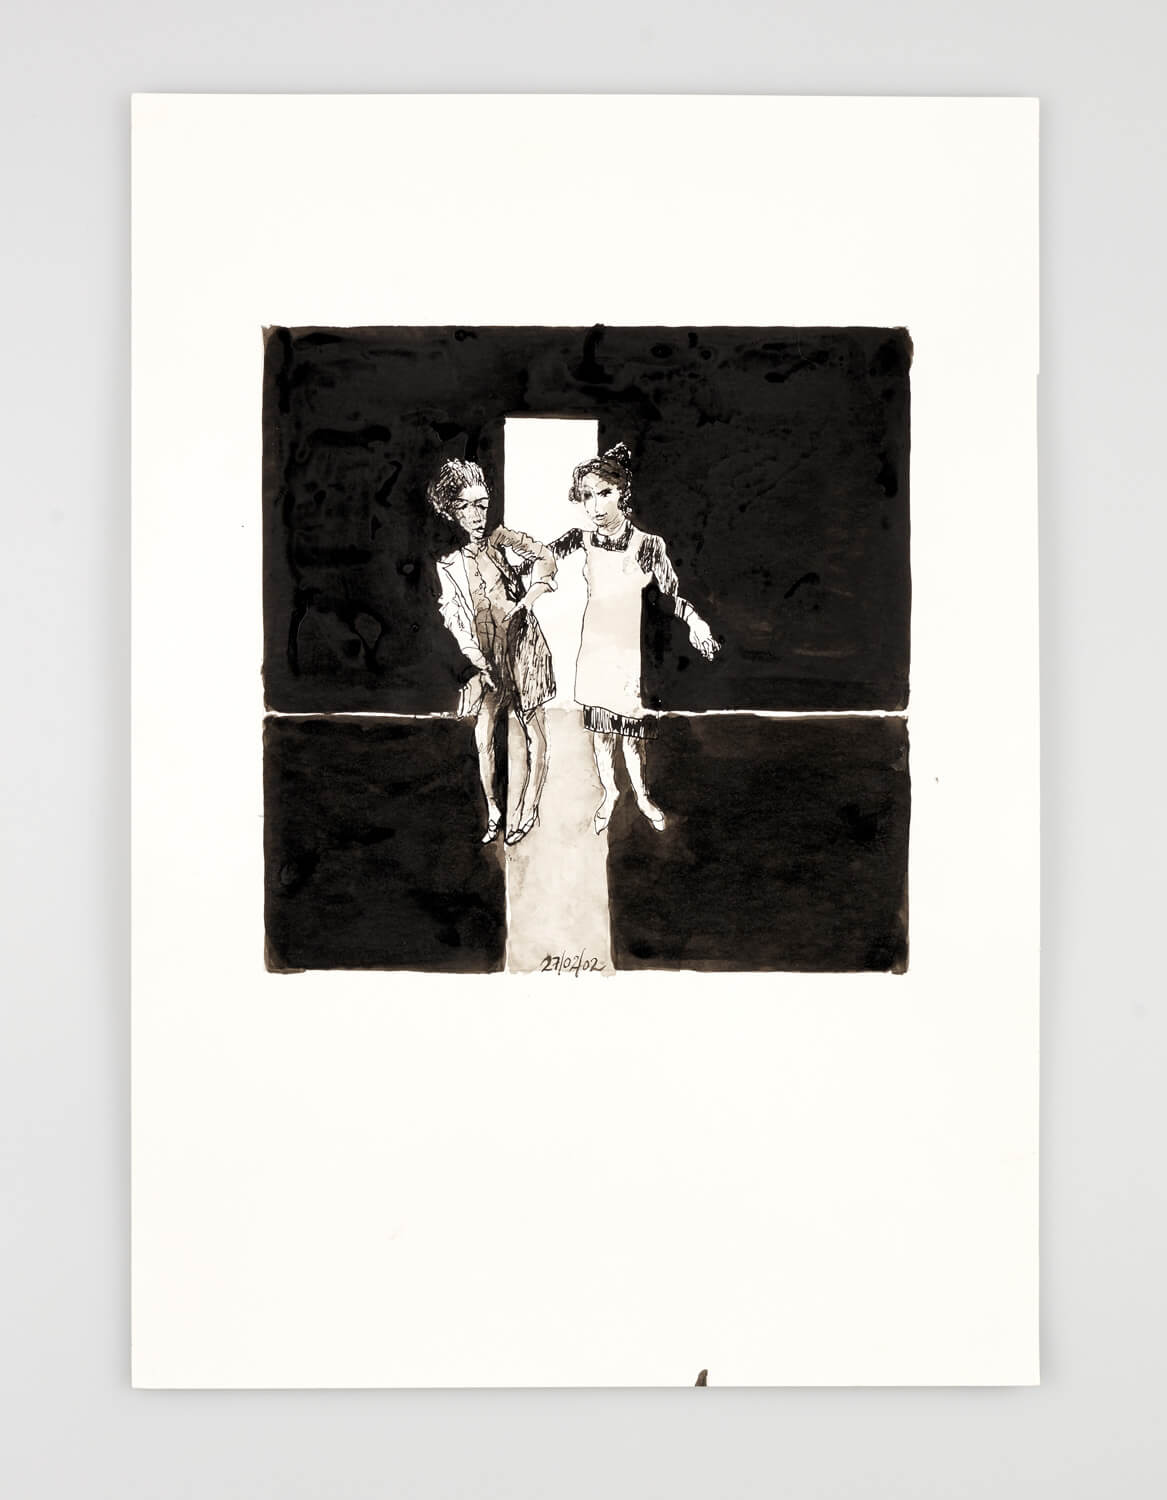 JB054 - Two Women: Getting Undressed - 2002 - 50 x 35 cm - Indian ink and wash on paper